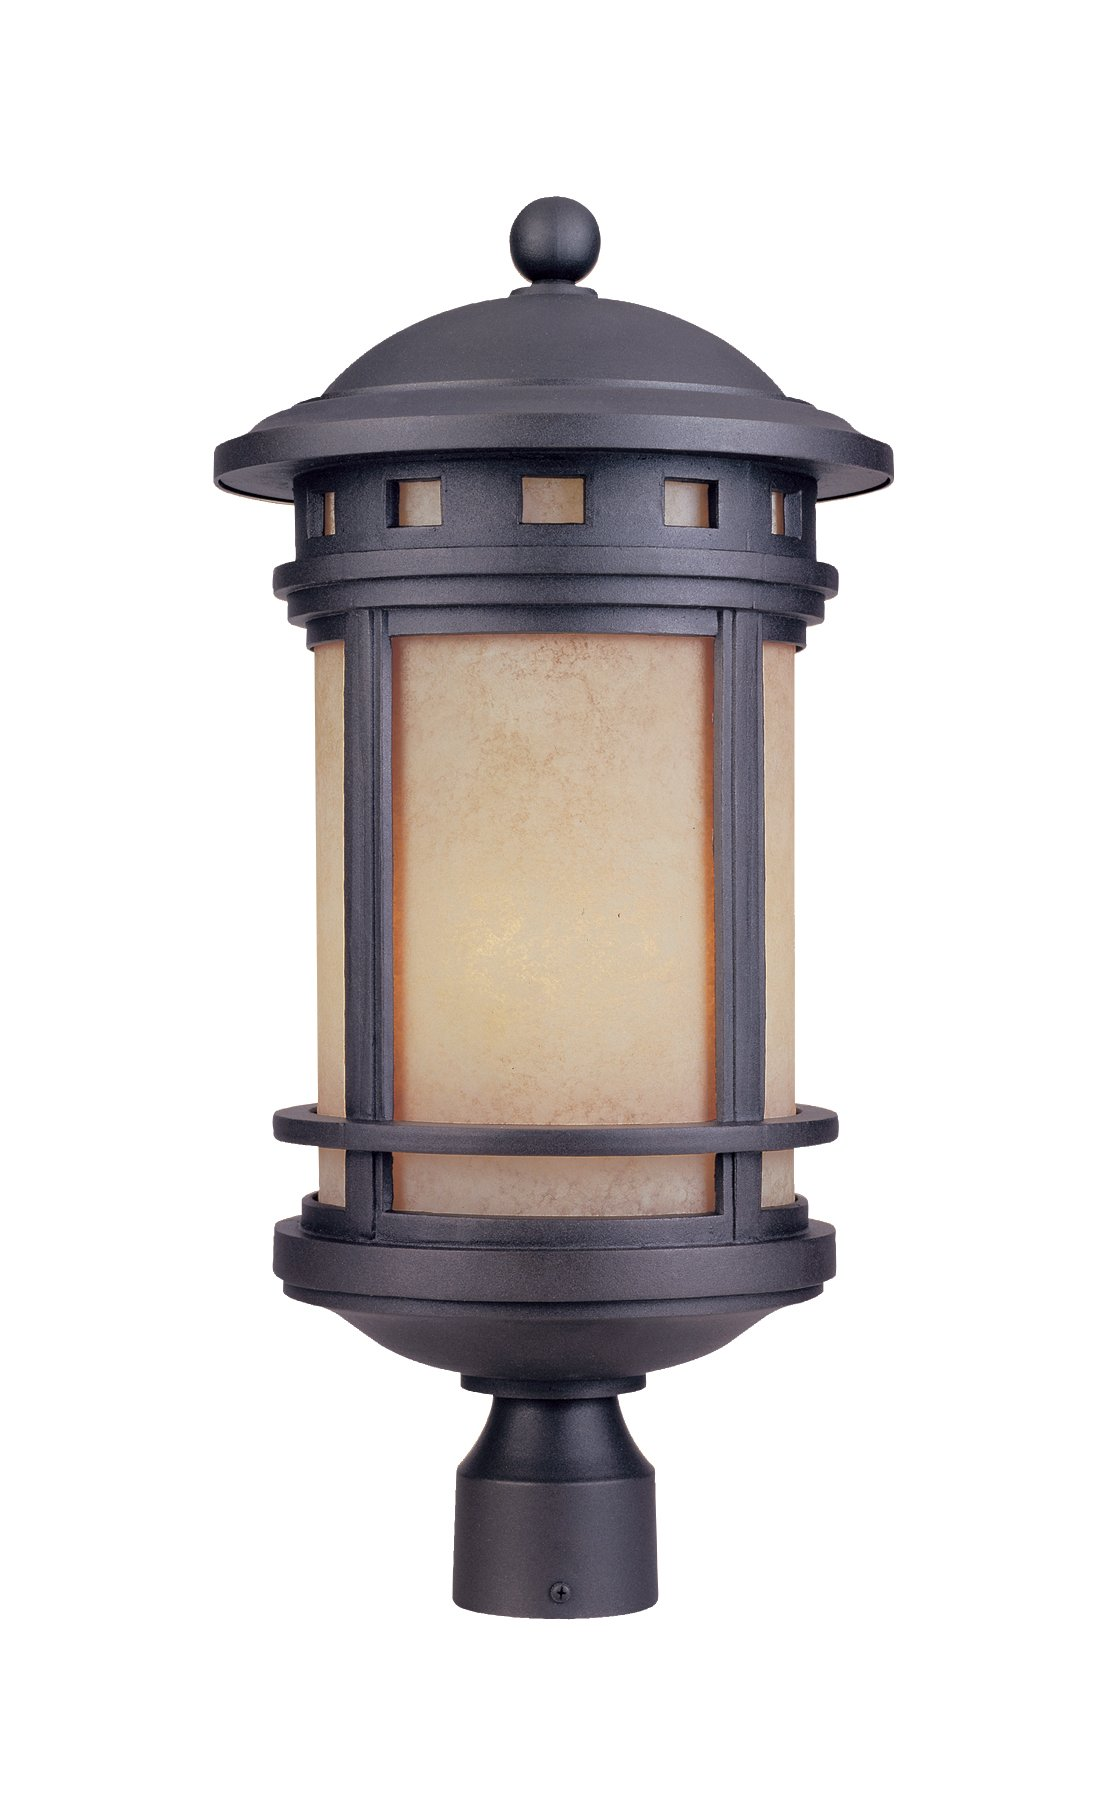 Designers Fountain 2396-AM-ORB Sedona Post Lanterns, Oil Rubbed Bronze